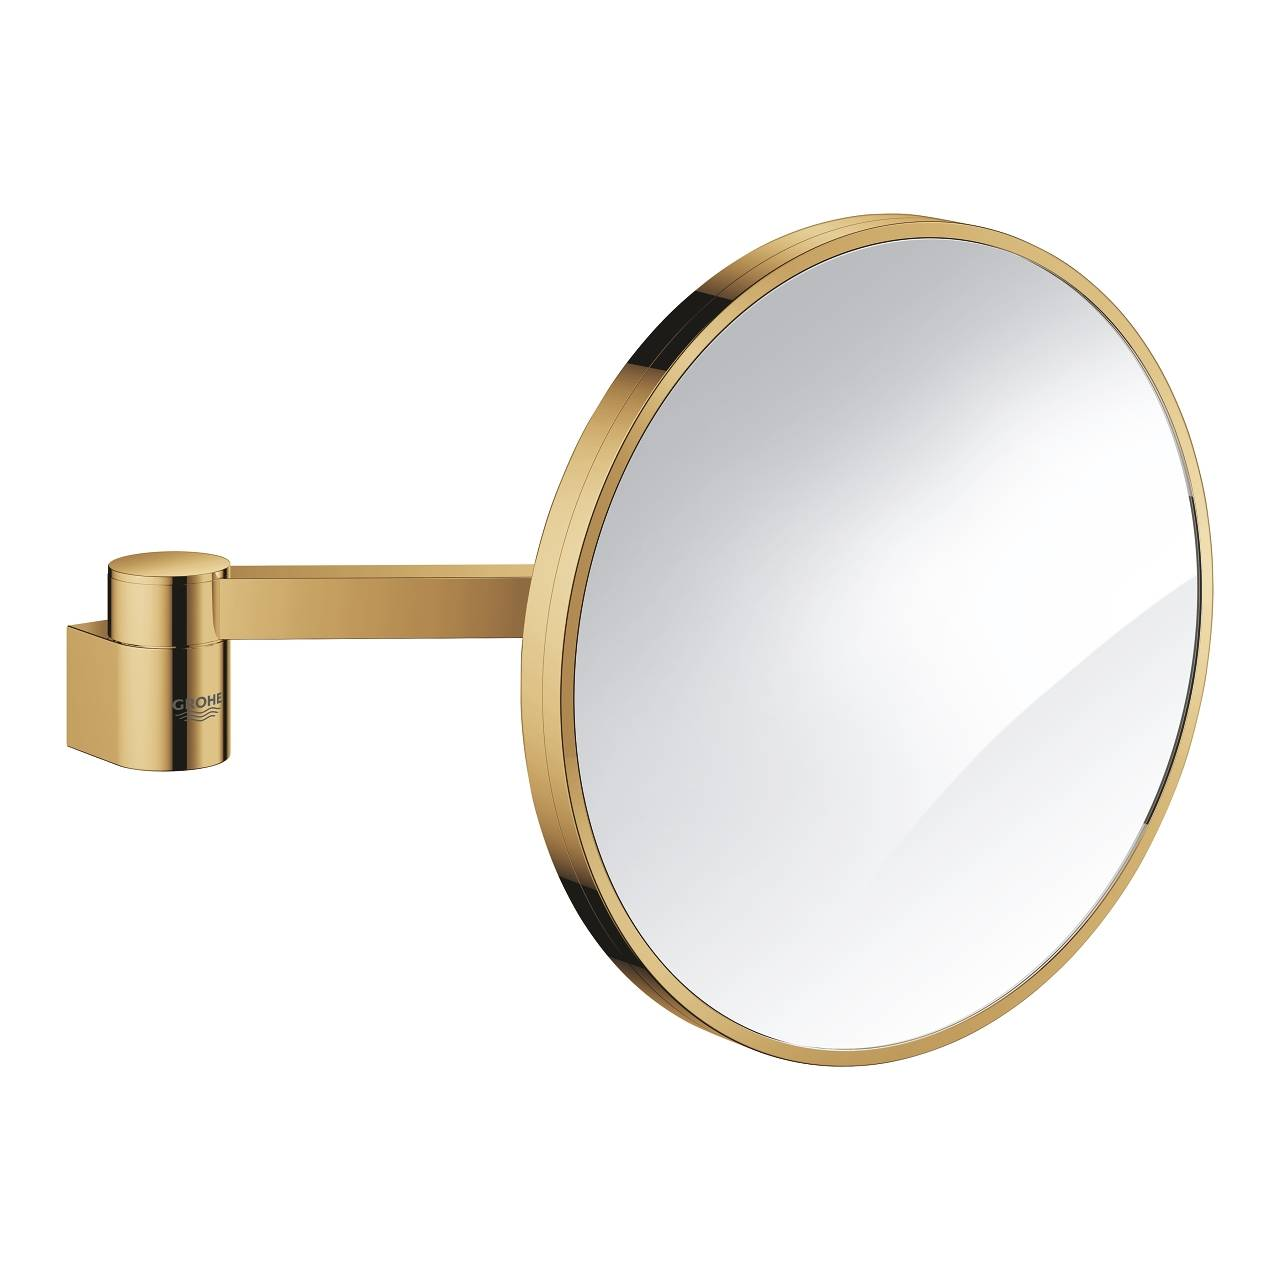 Grohe Selection - Miroir cosmétique mirrored / cool sunrise